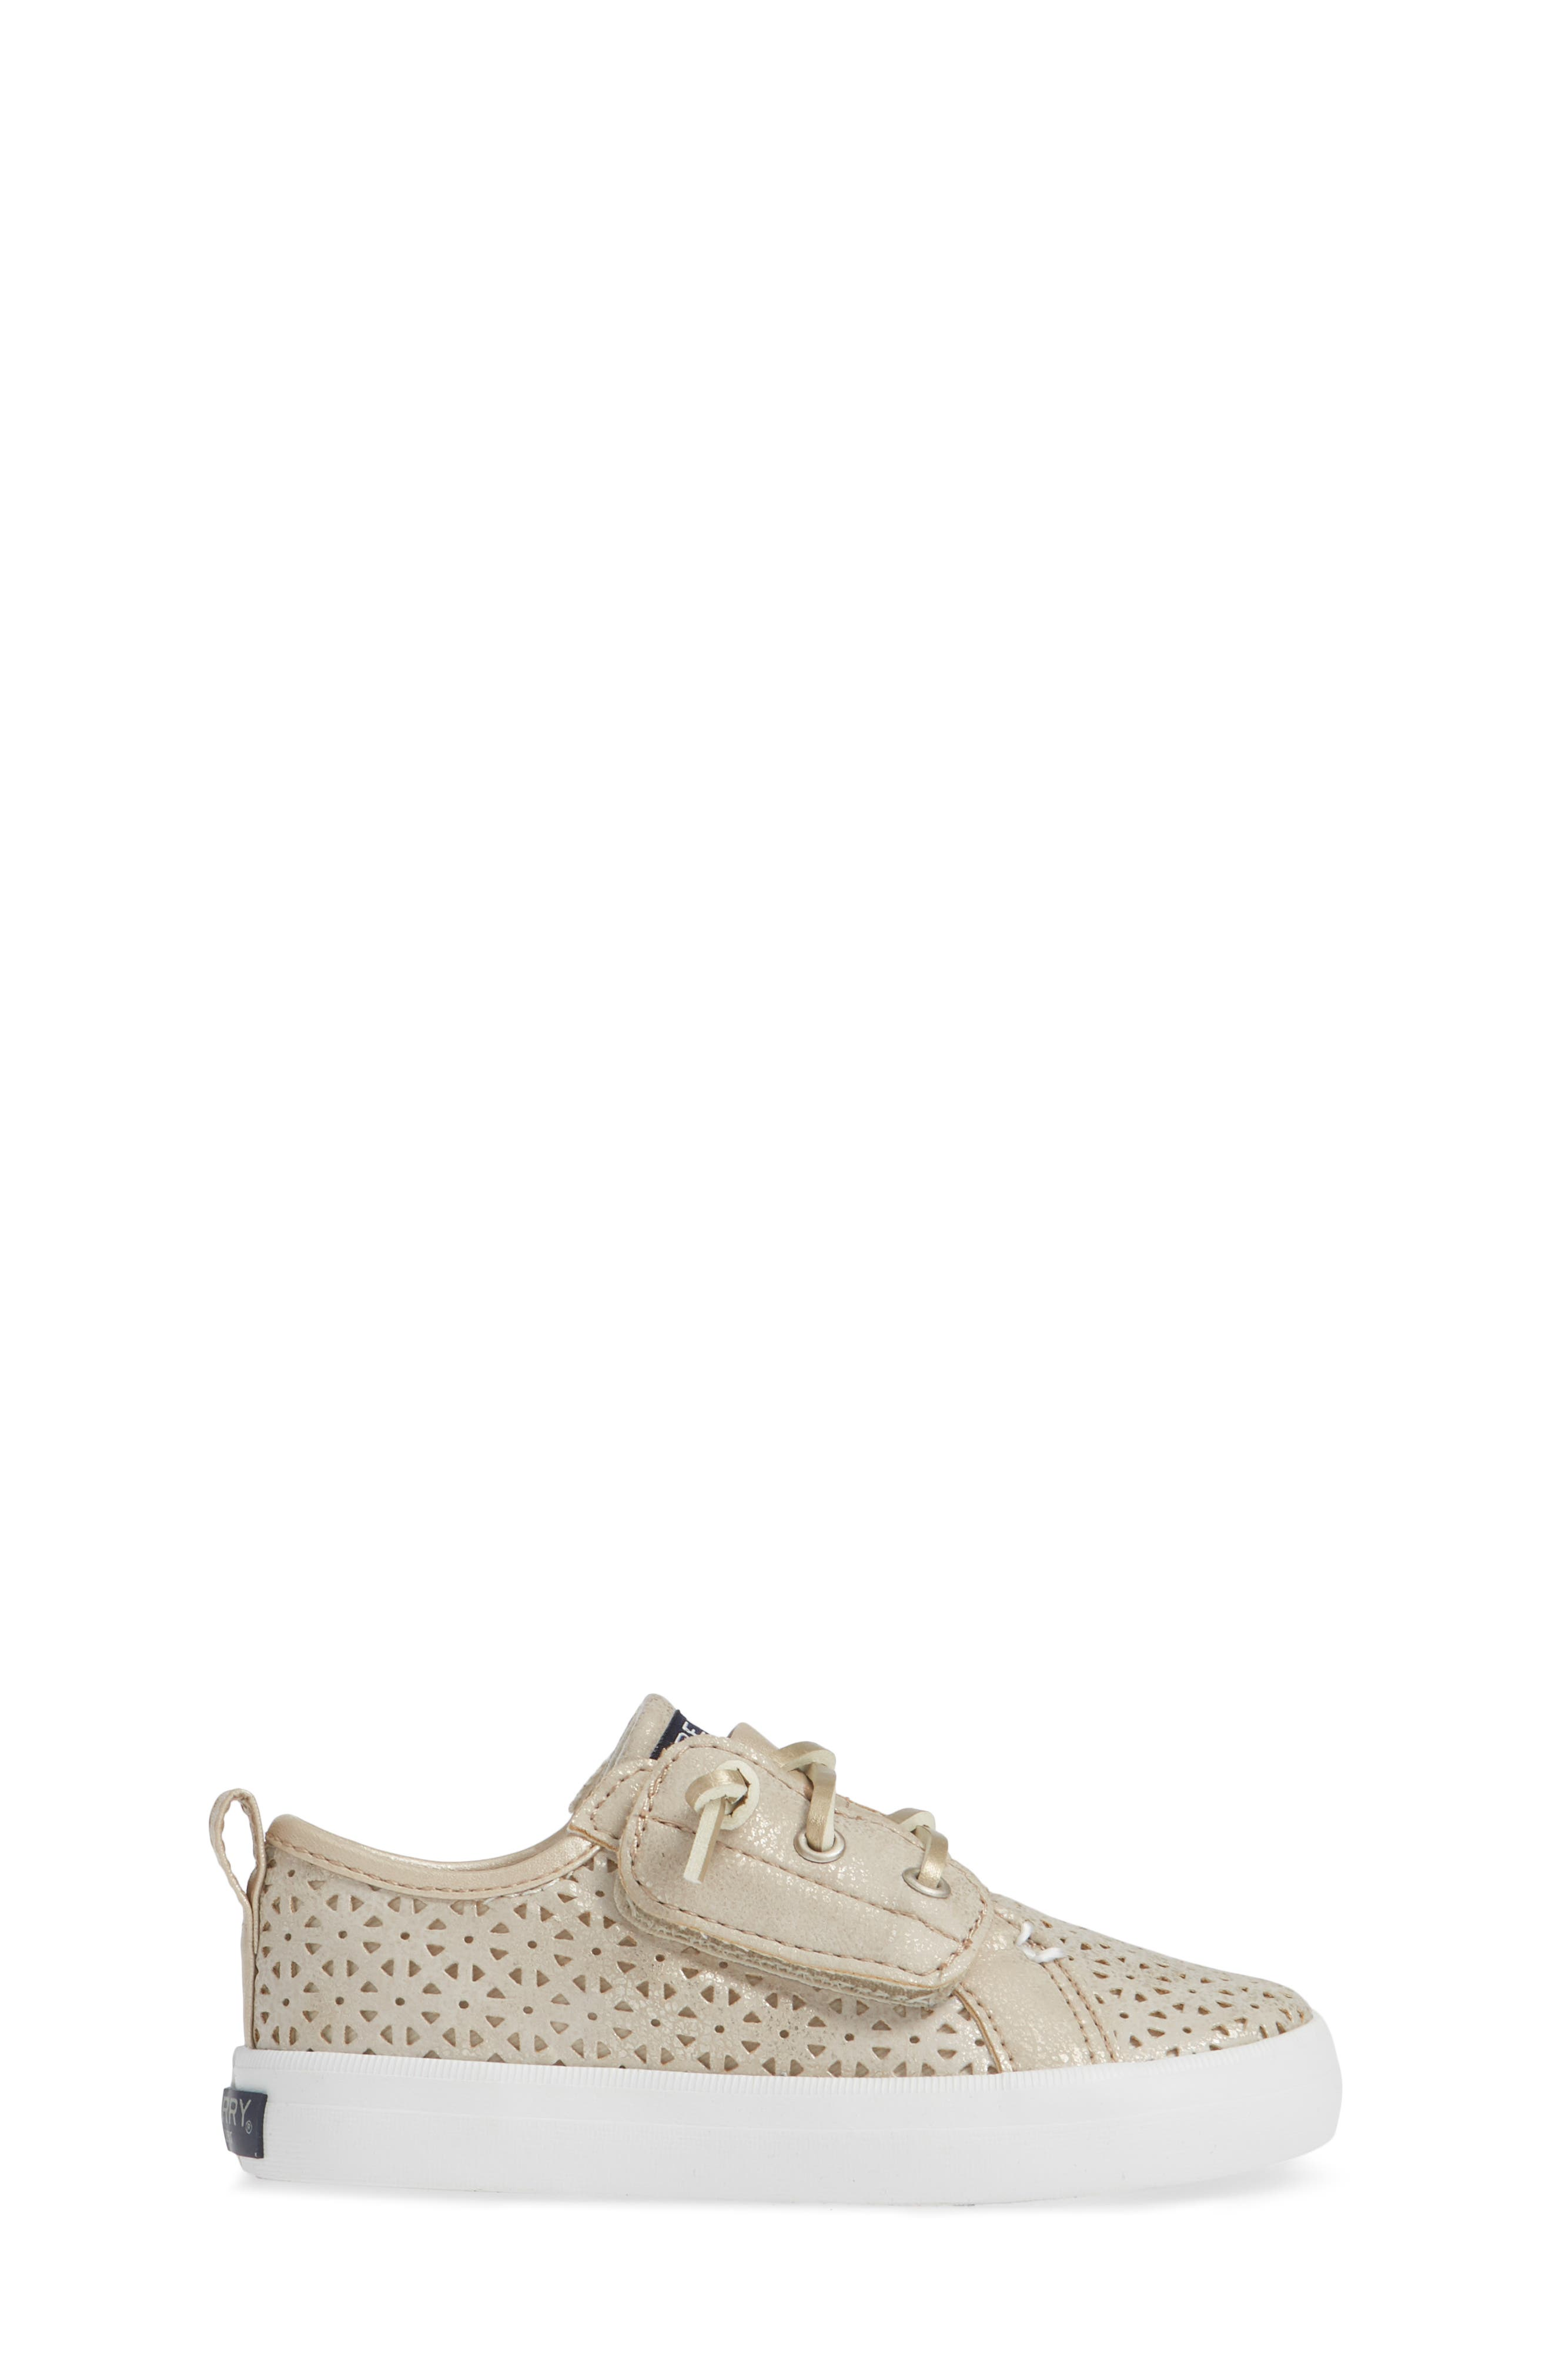 Sperry Crest Vibe Sneaker,                             Alternate thumbnail 3, color,                             CHAMPAGNE SYNTHETIC